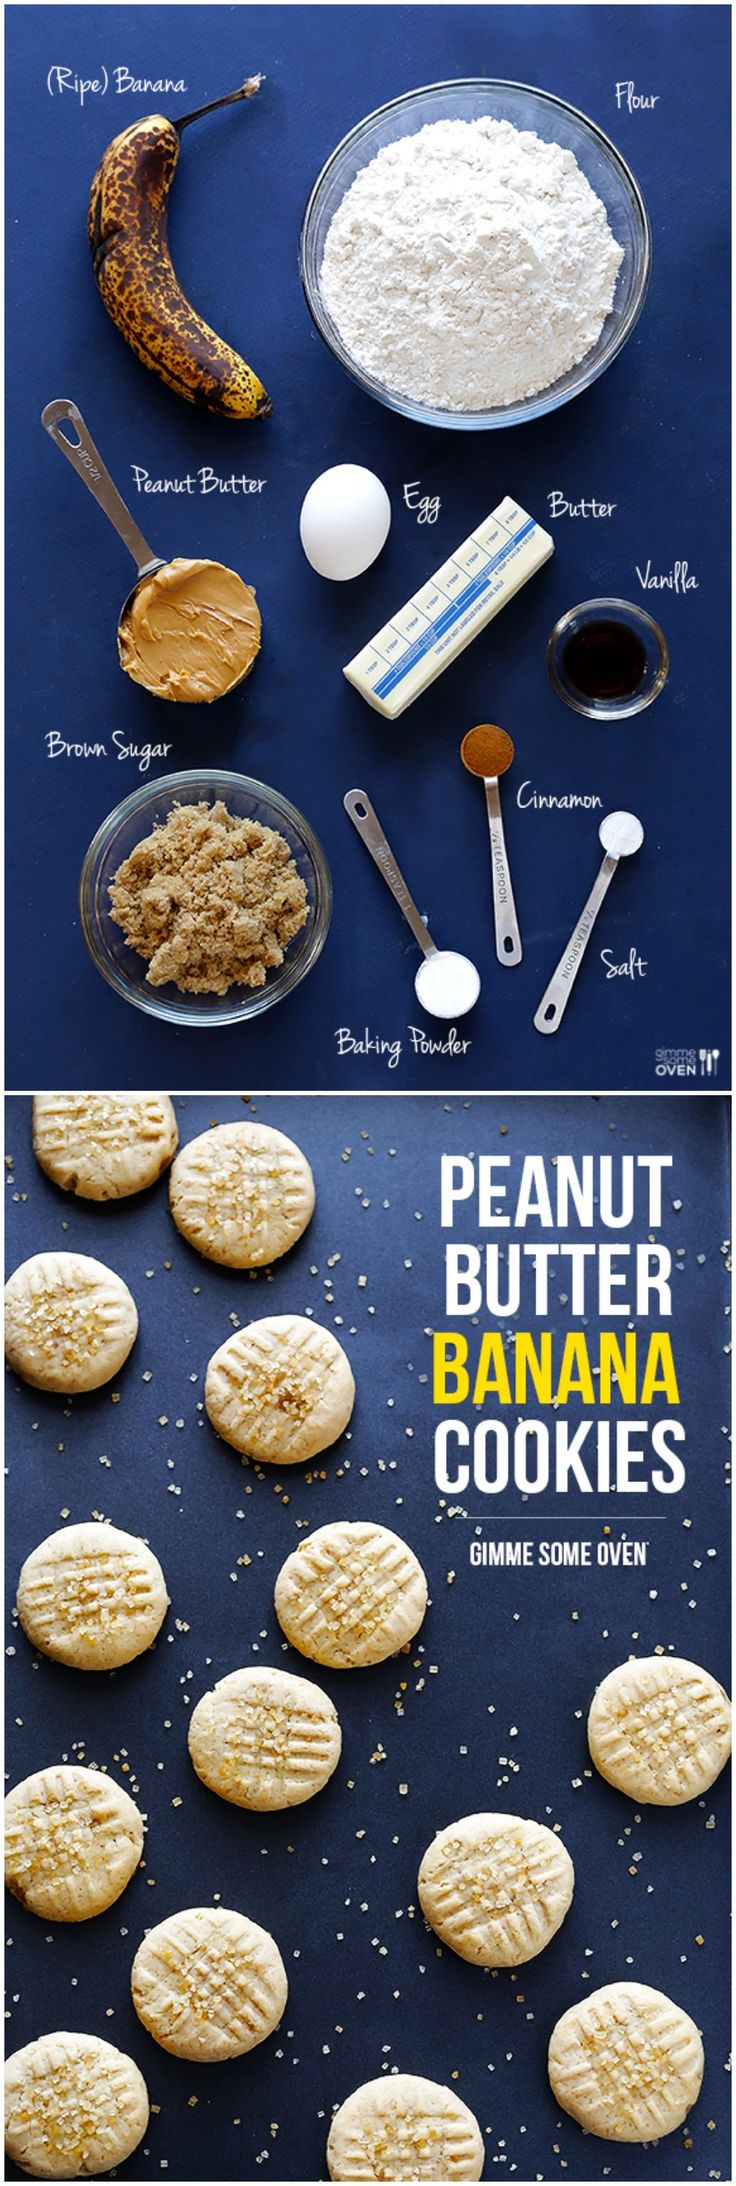 Peanut Butter Banana Cookies -- these are easy to make, and taste like a cross between banana bread and pb cookies!! | gimmesomeoven.com #dessert